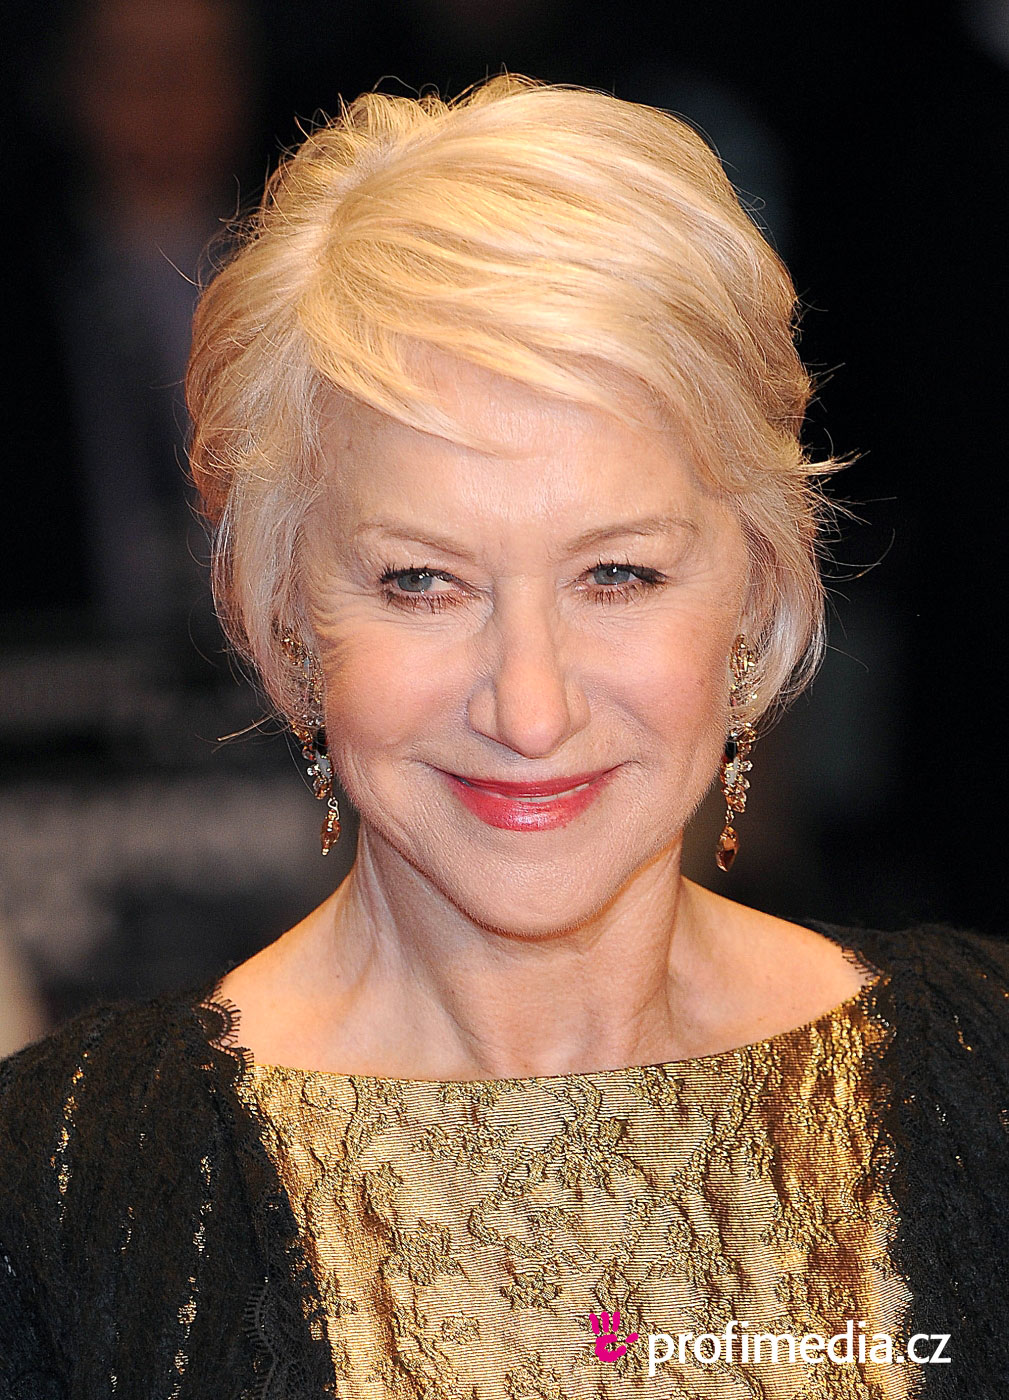 haircuts for with hair helen mirren frisur zum ausprobieren in efrisuren 1515